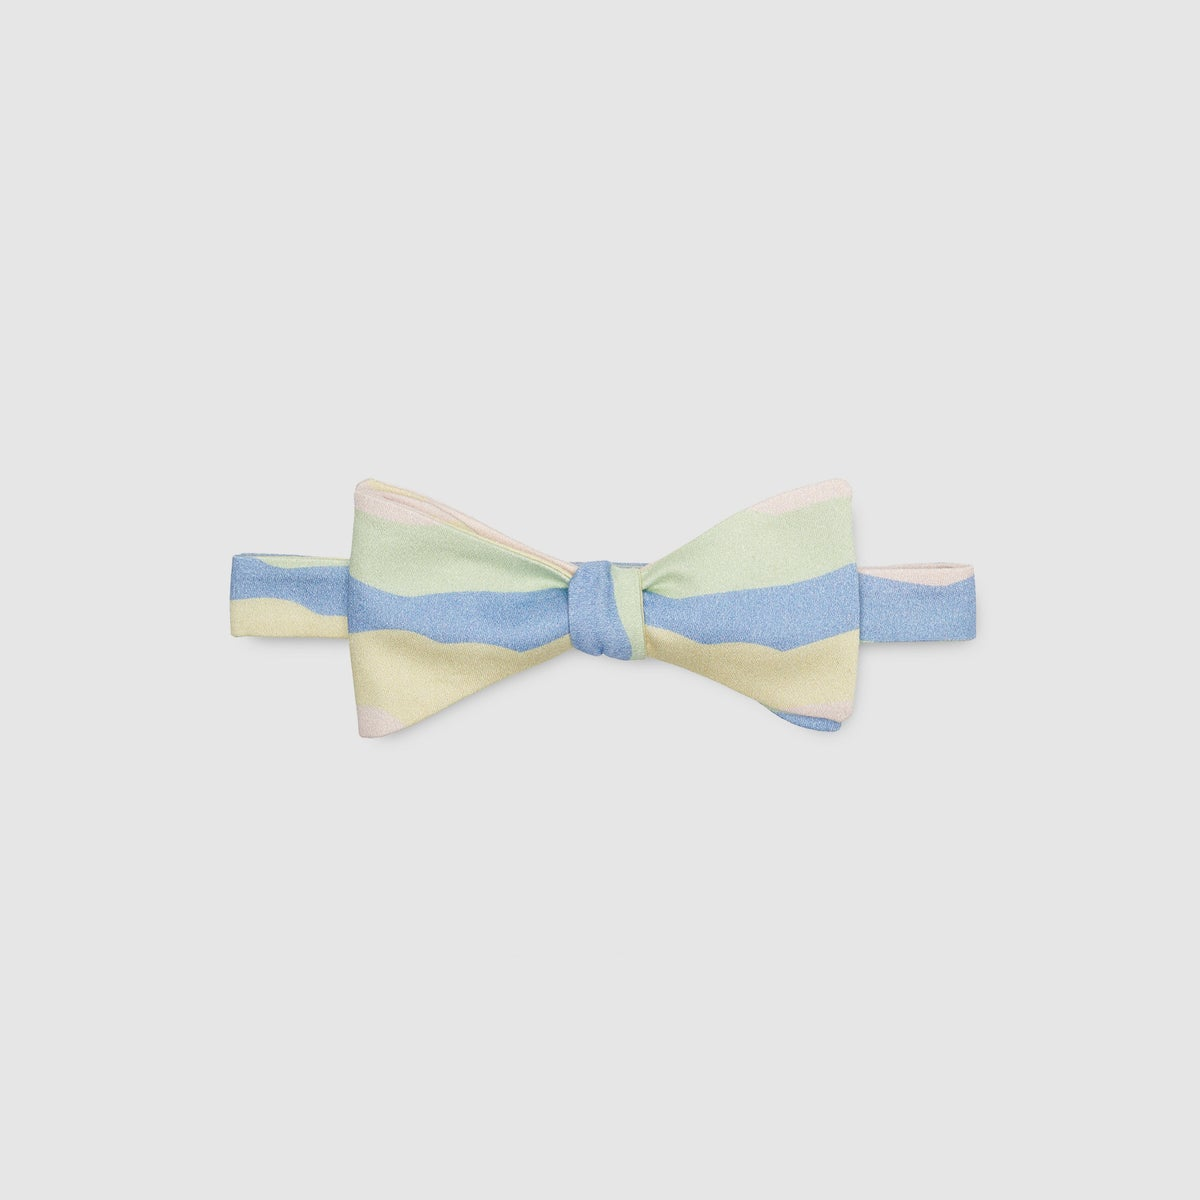 Image of ODESSOLEA - the bow tie